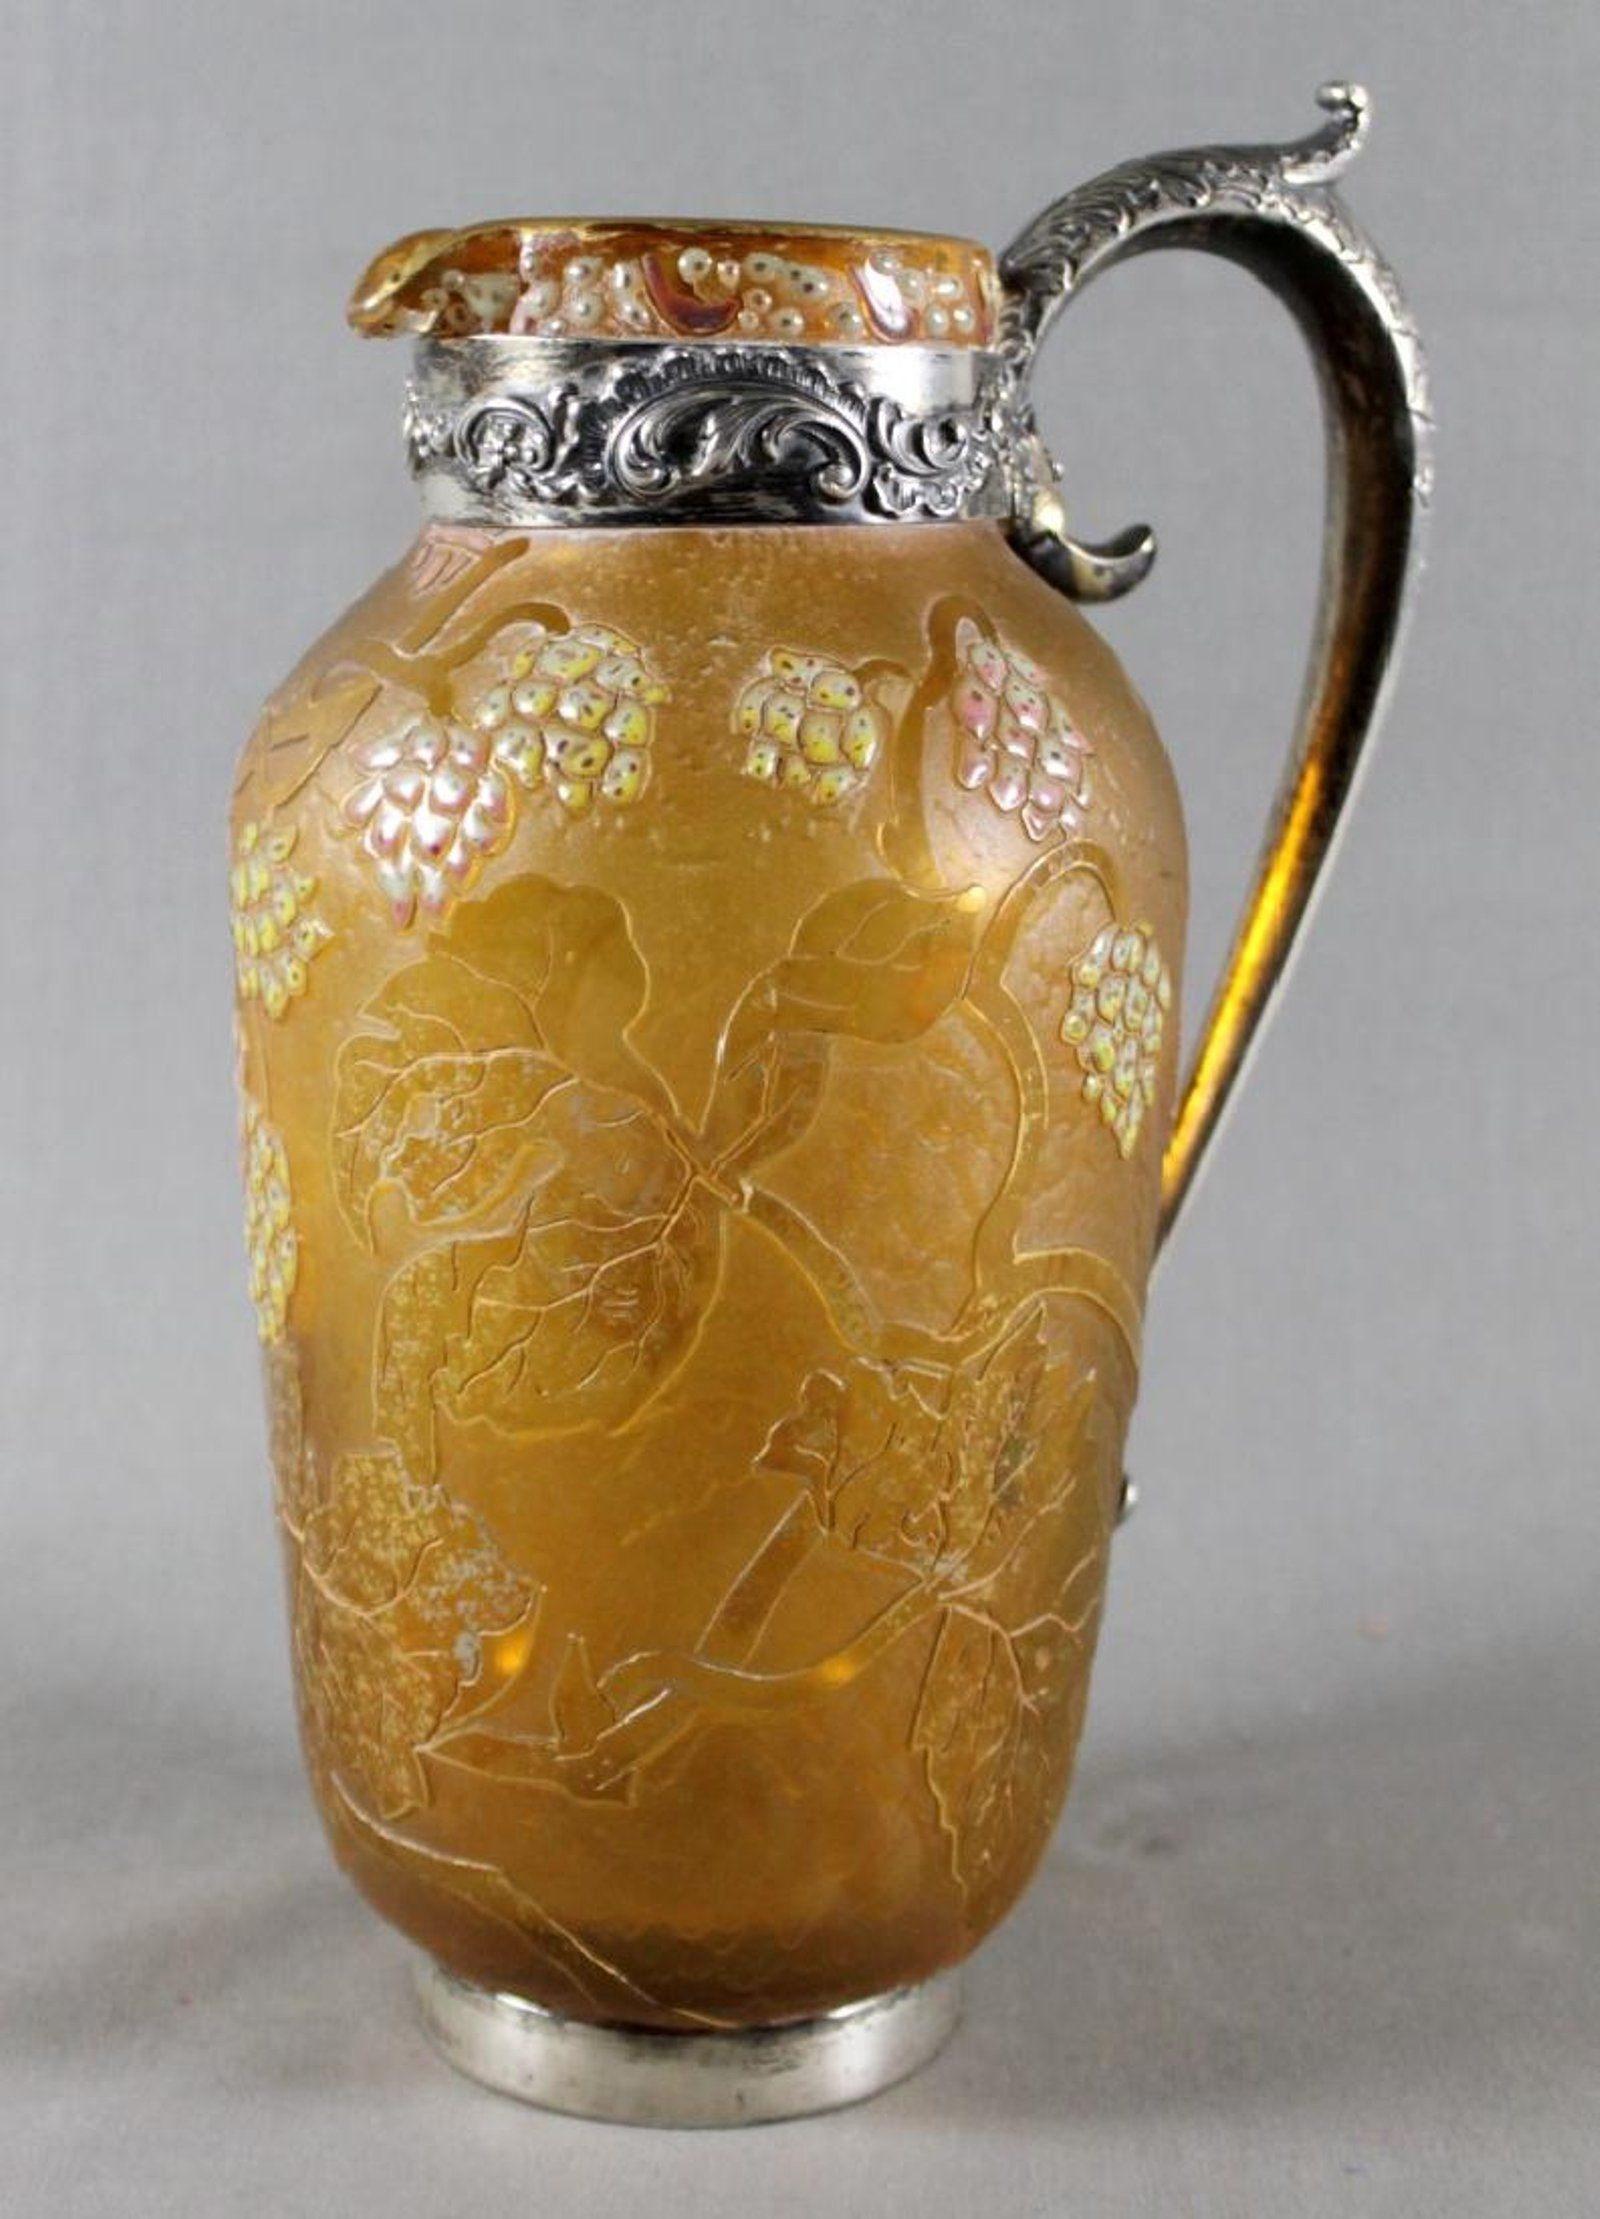 galle vase prices of daum nancy vase w silver handles and mounts daum pinterest within daum nancy vase w silver handles and mounts